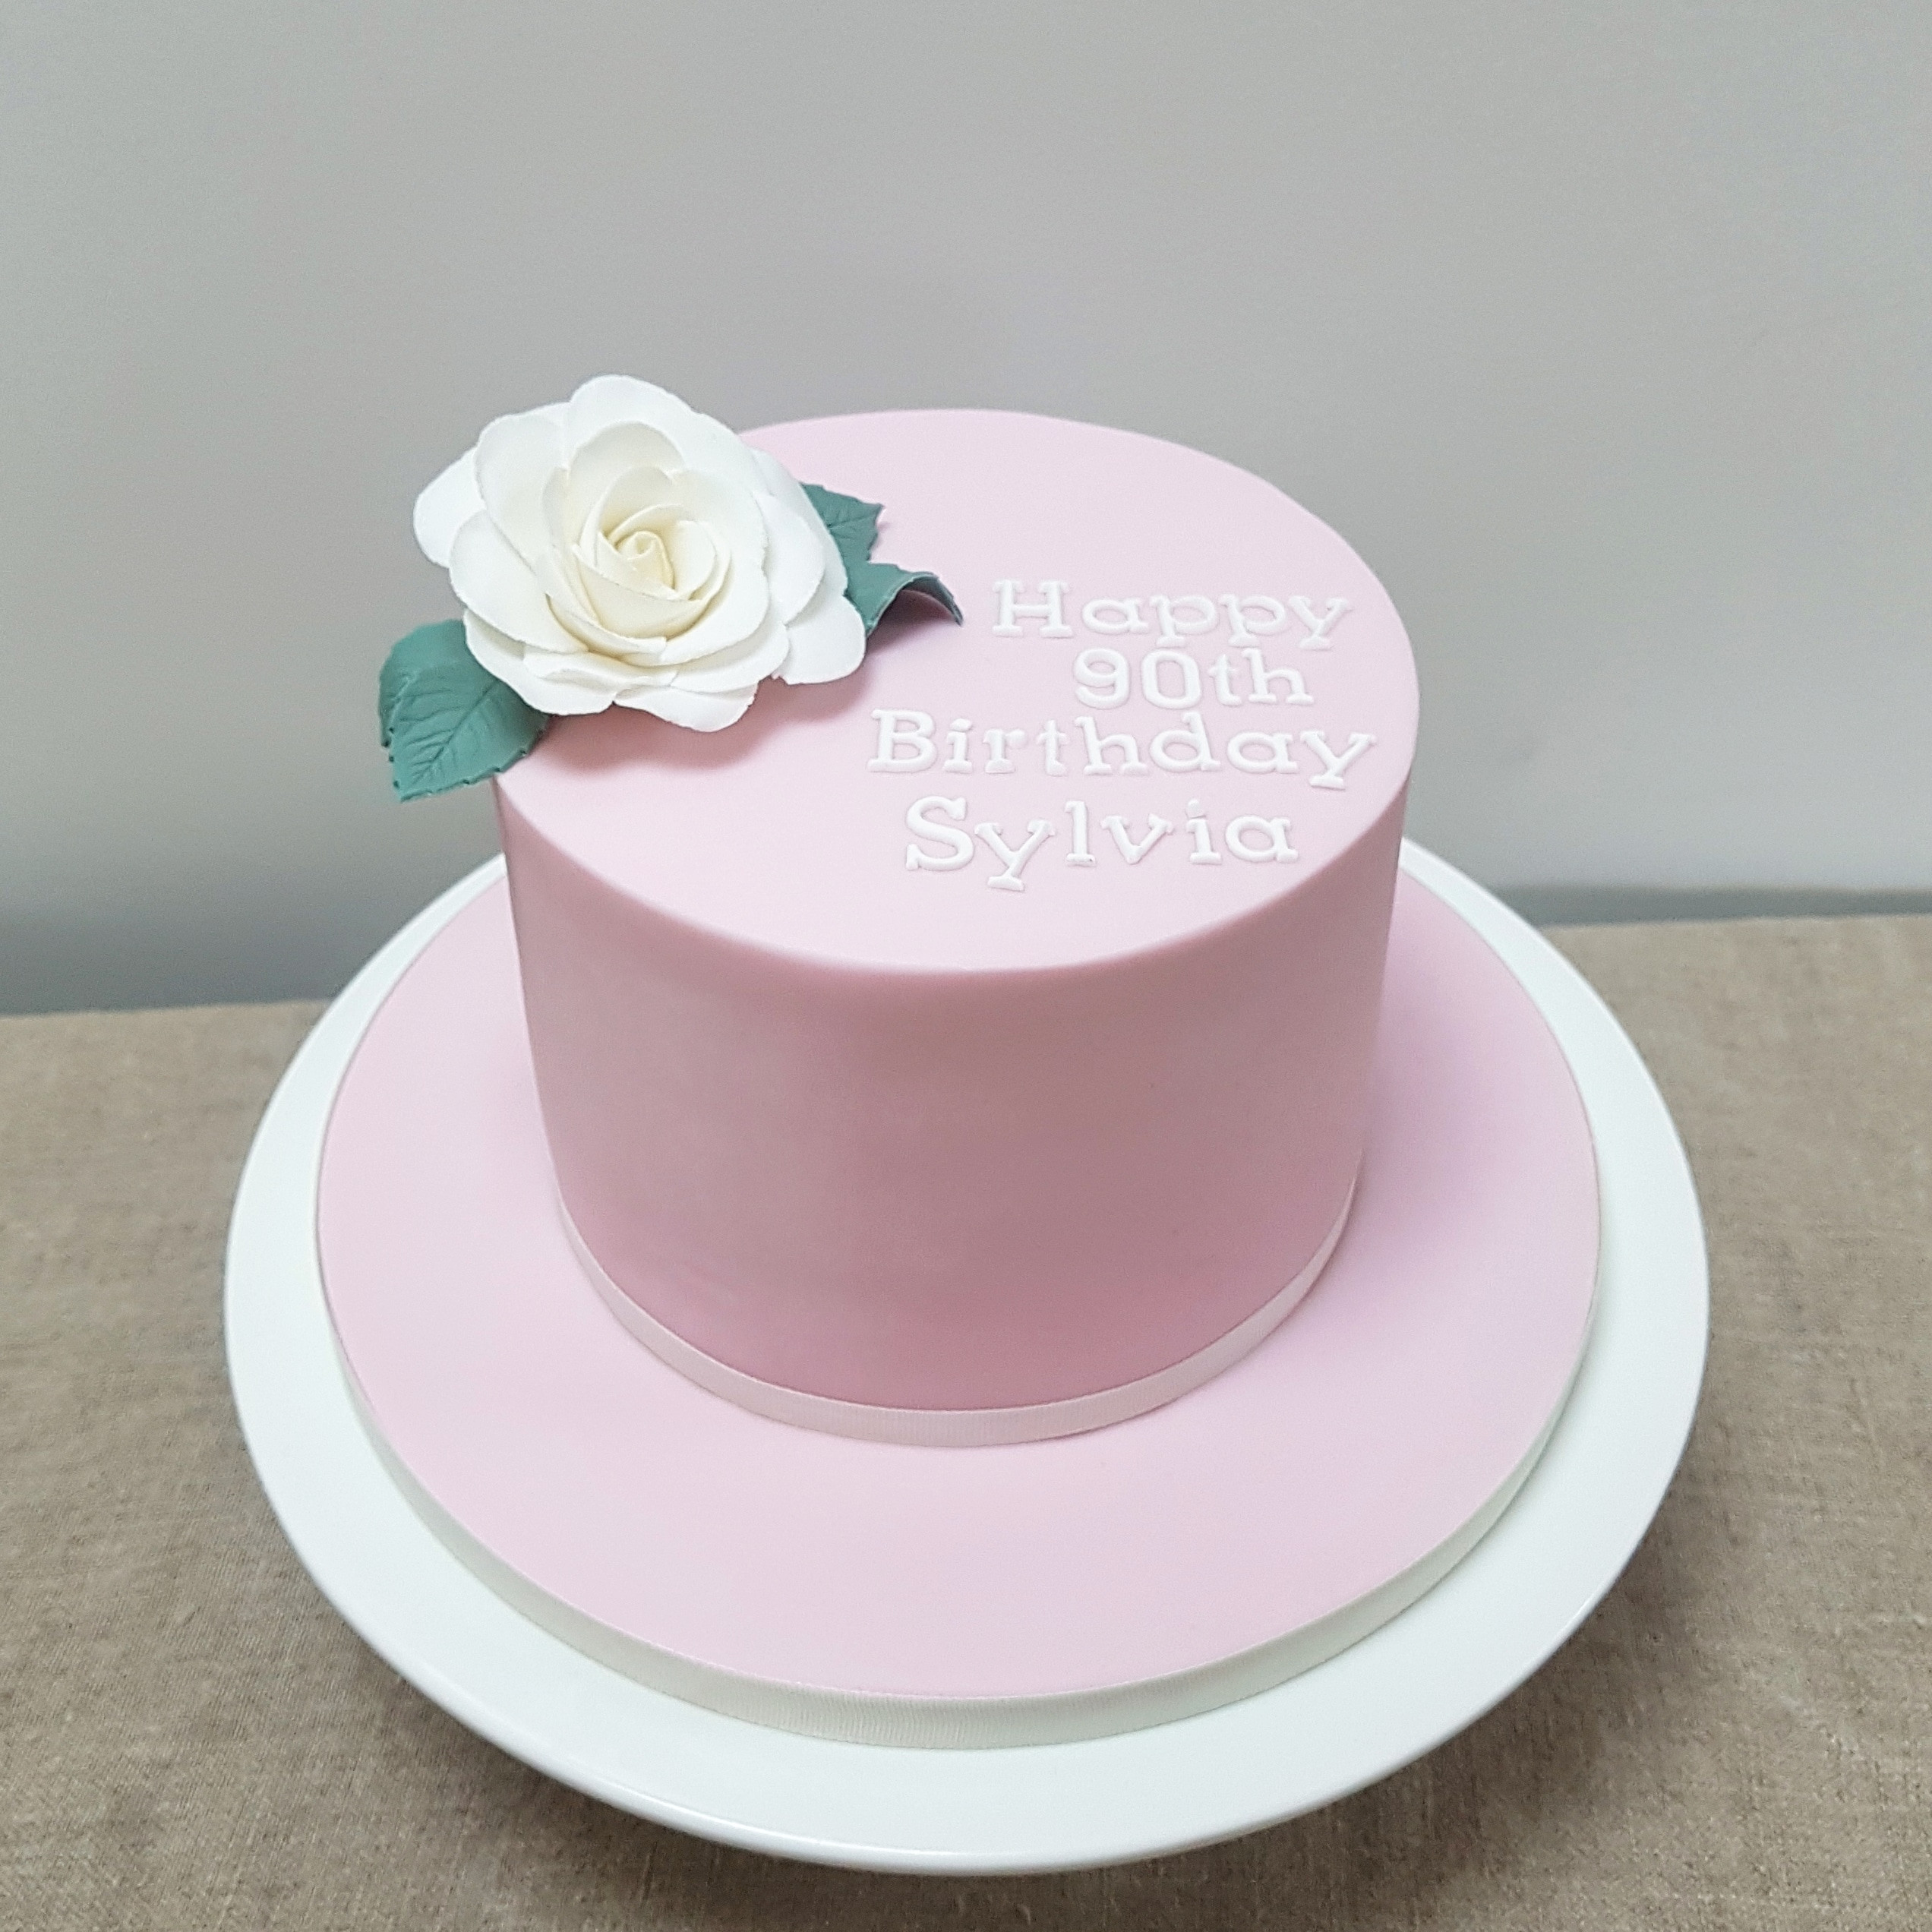 Rose 90th Birthday Cakes